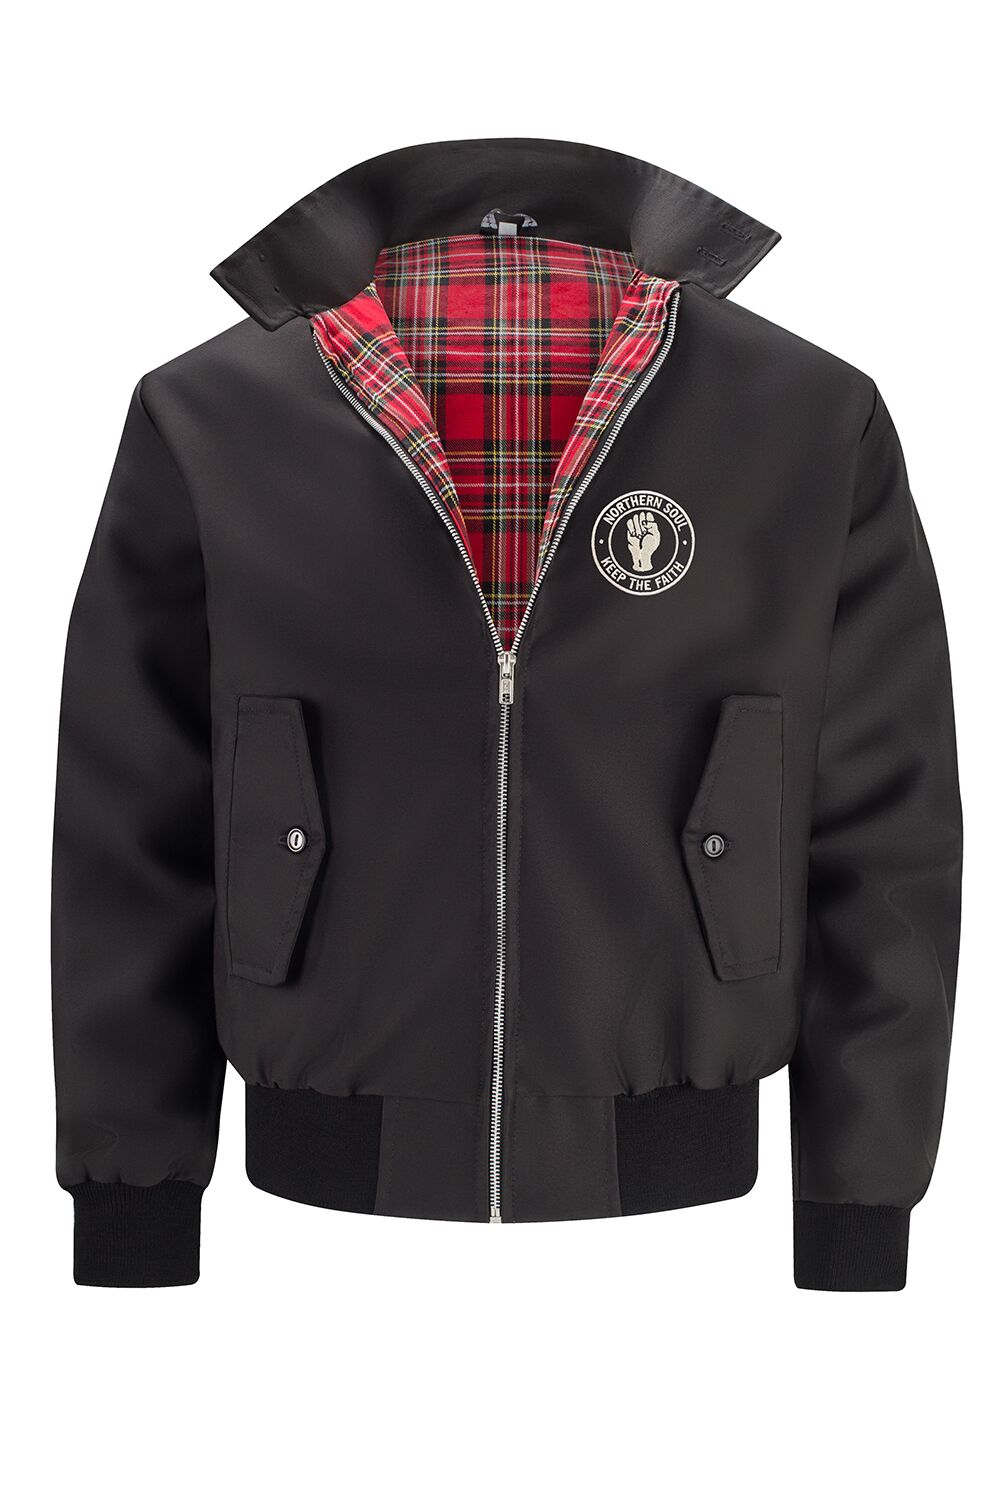 Classic Harrington Jacket - Black (with Northern Soul badge)